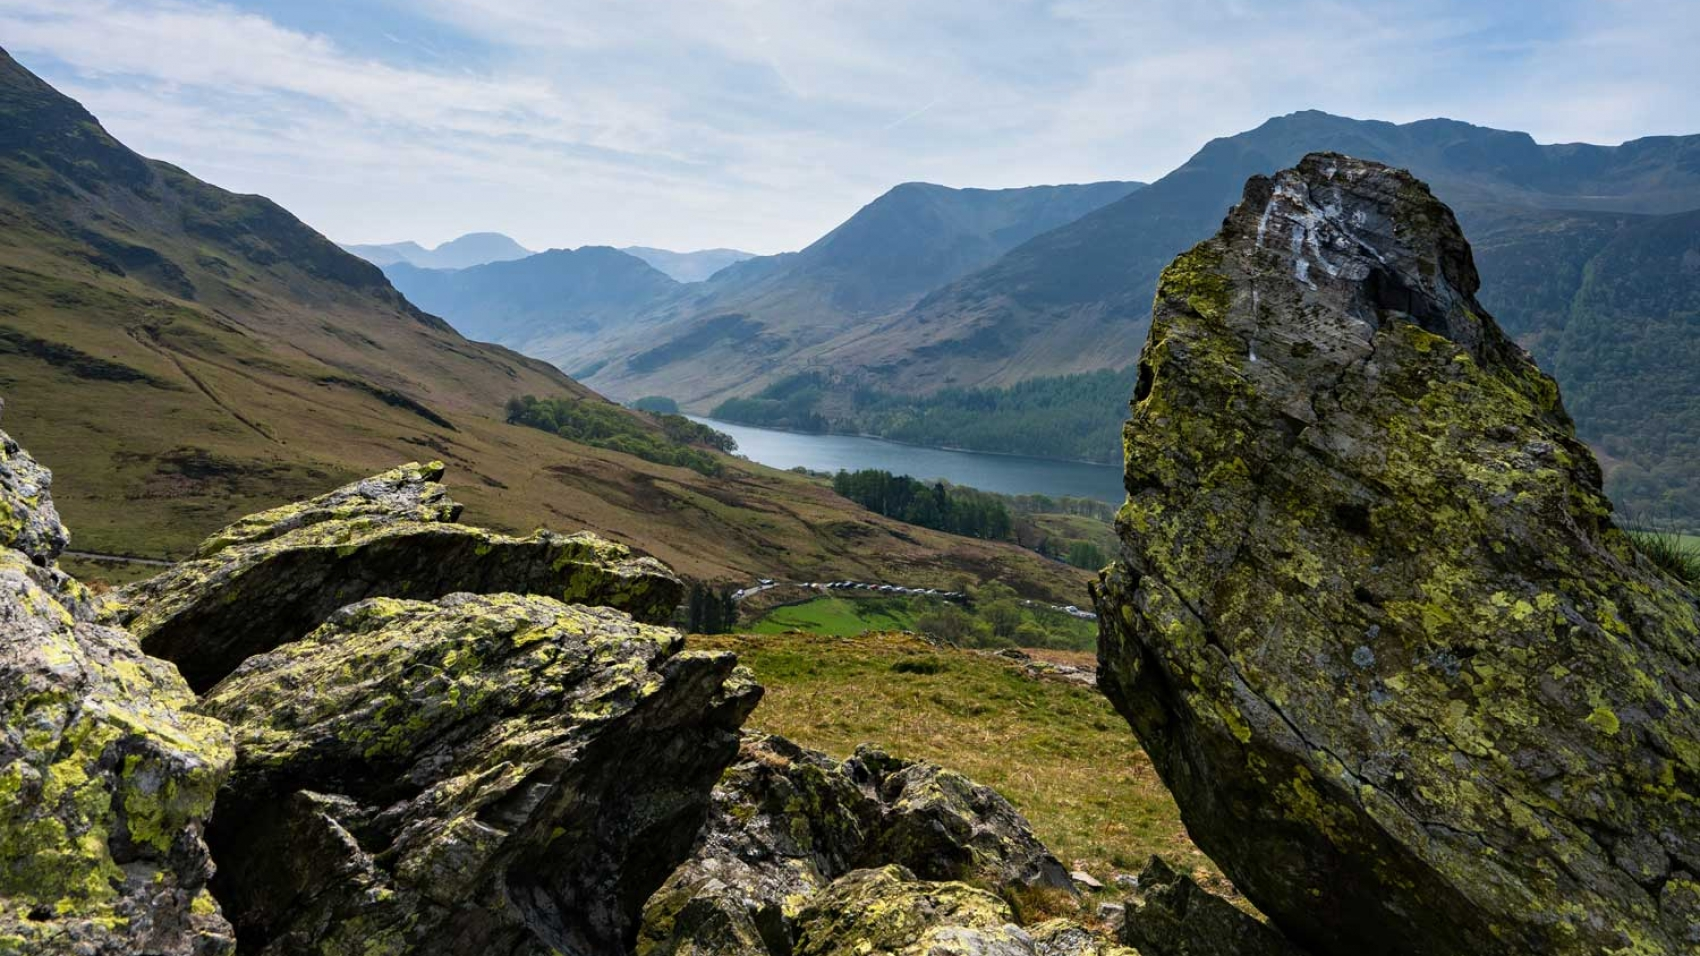 Idyllic views of glistening lakes surrounded by rugged peaks in Lake District, England